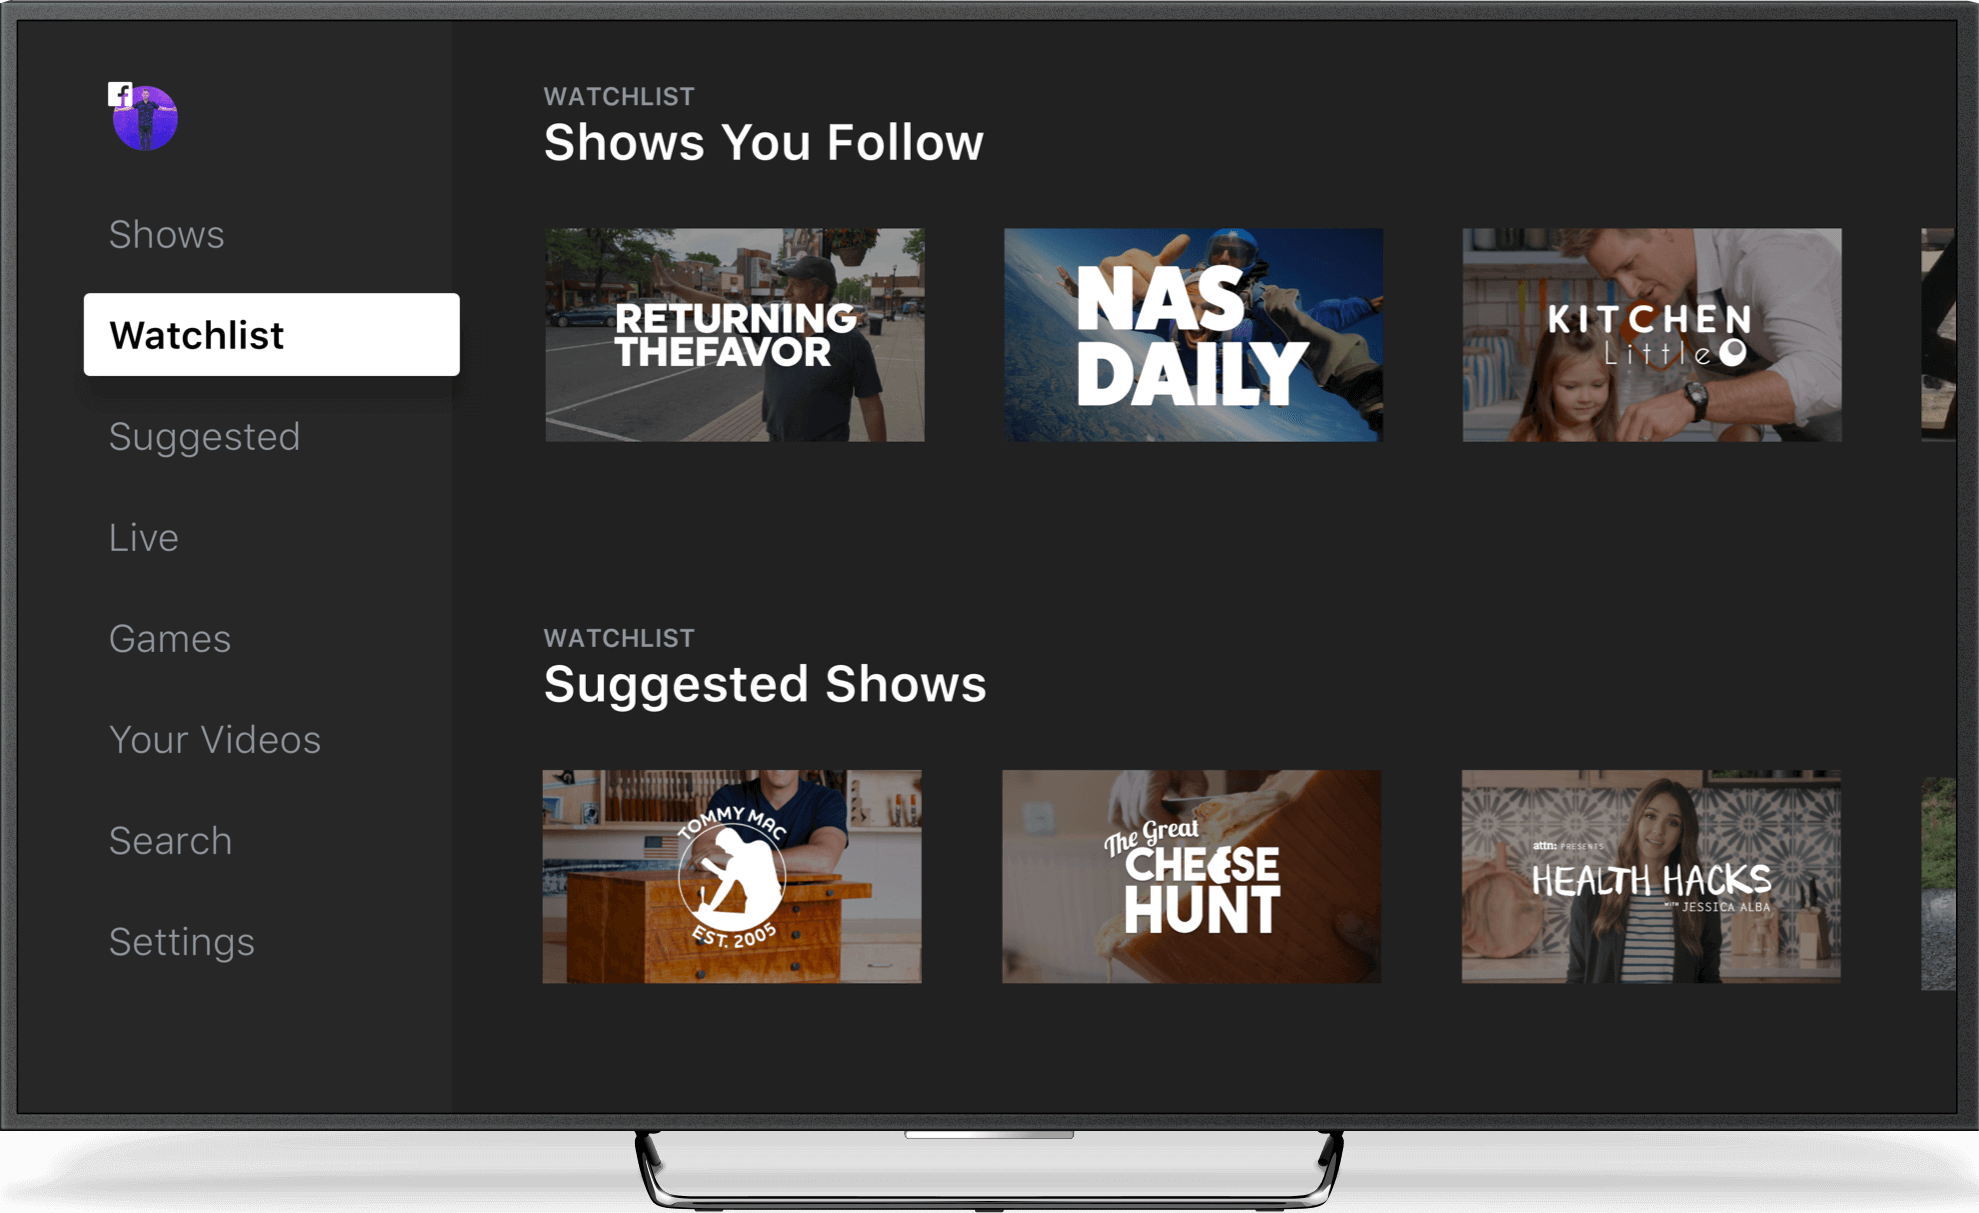 Facebook Watch Watchlist App